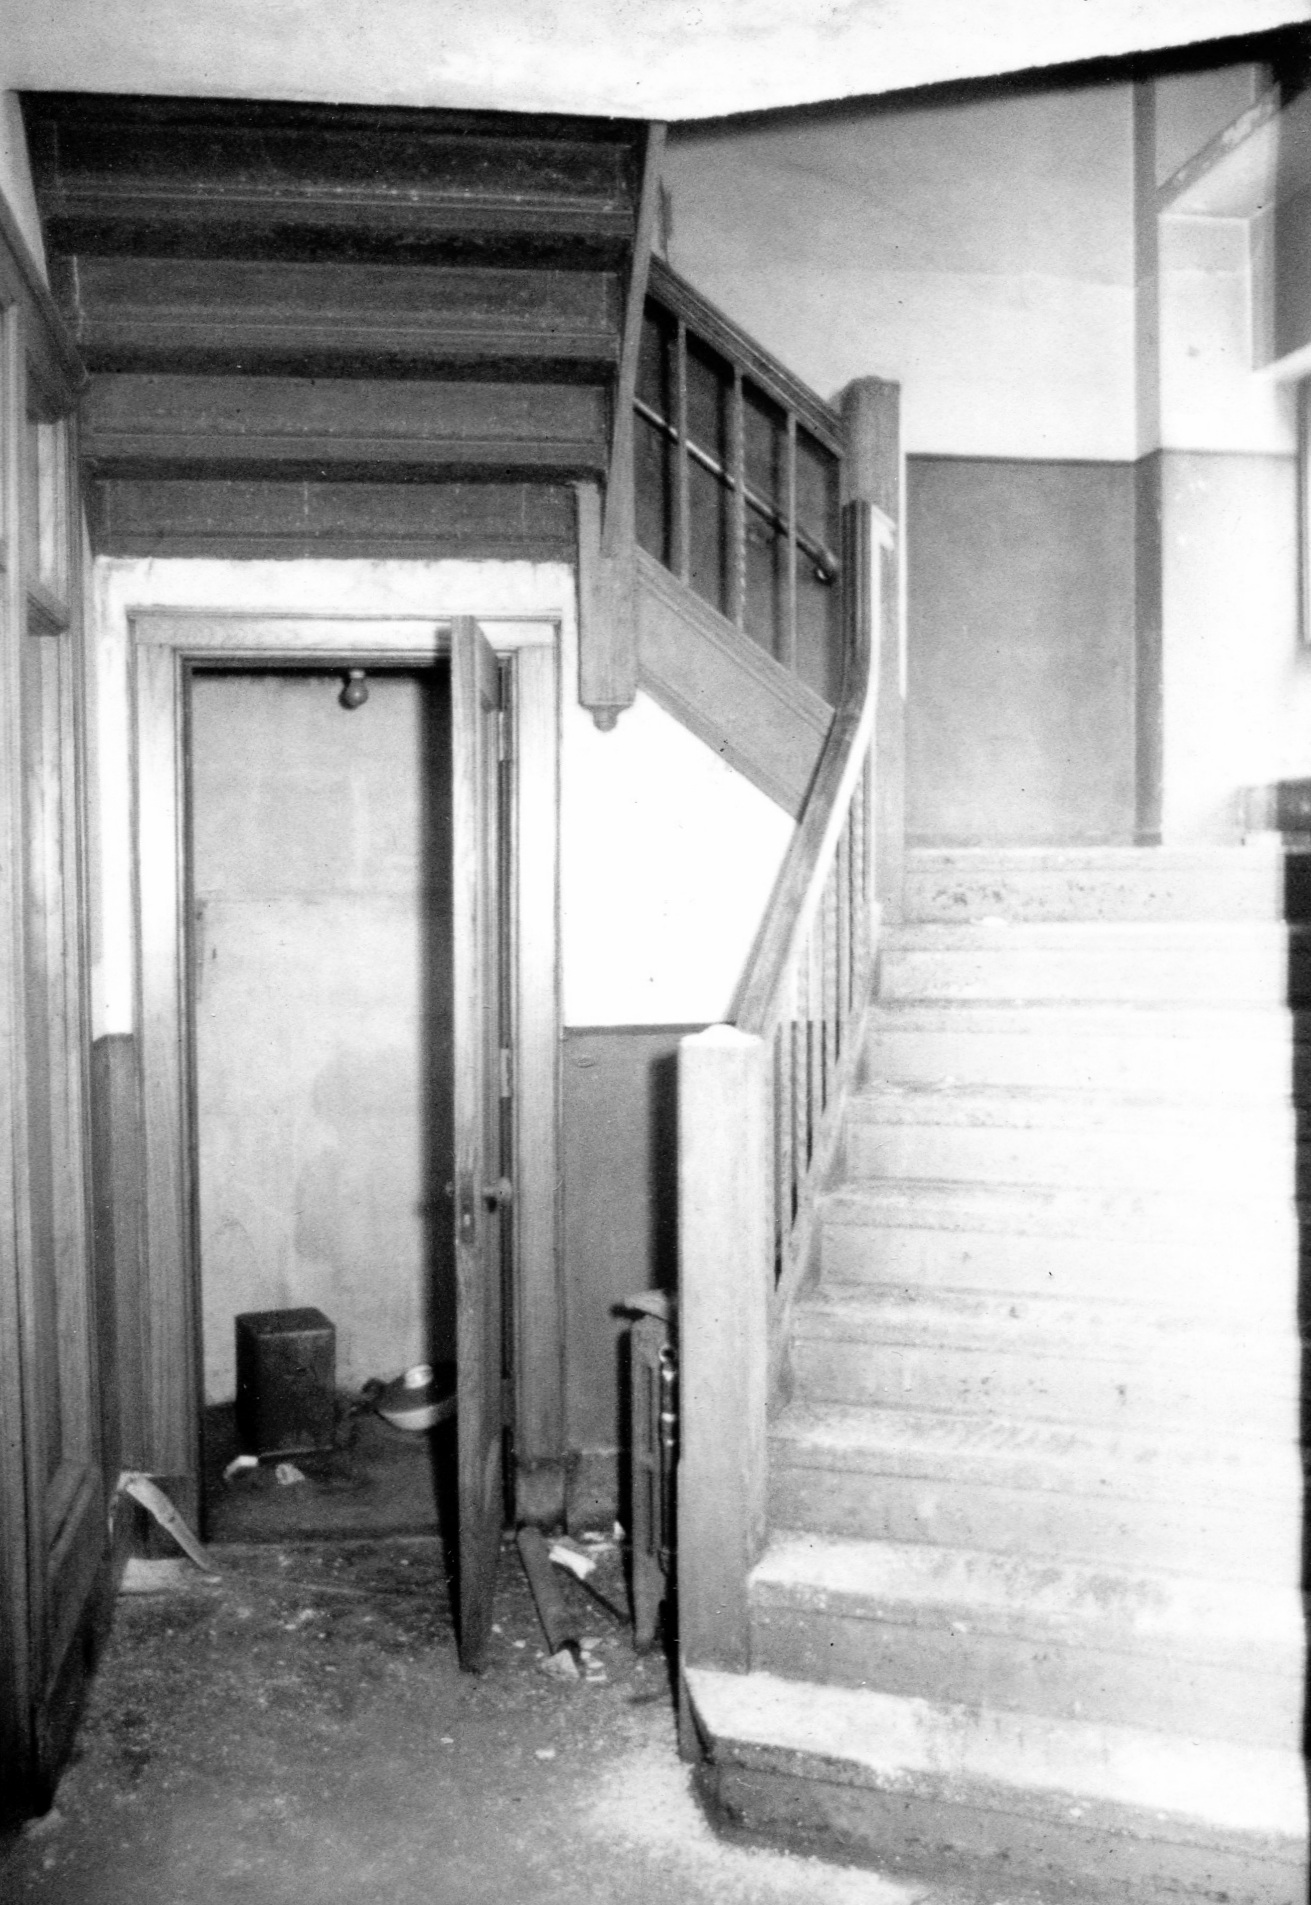 An interior staircase inside the Central State Bank Building in 1986, shortly before the building was demolished.